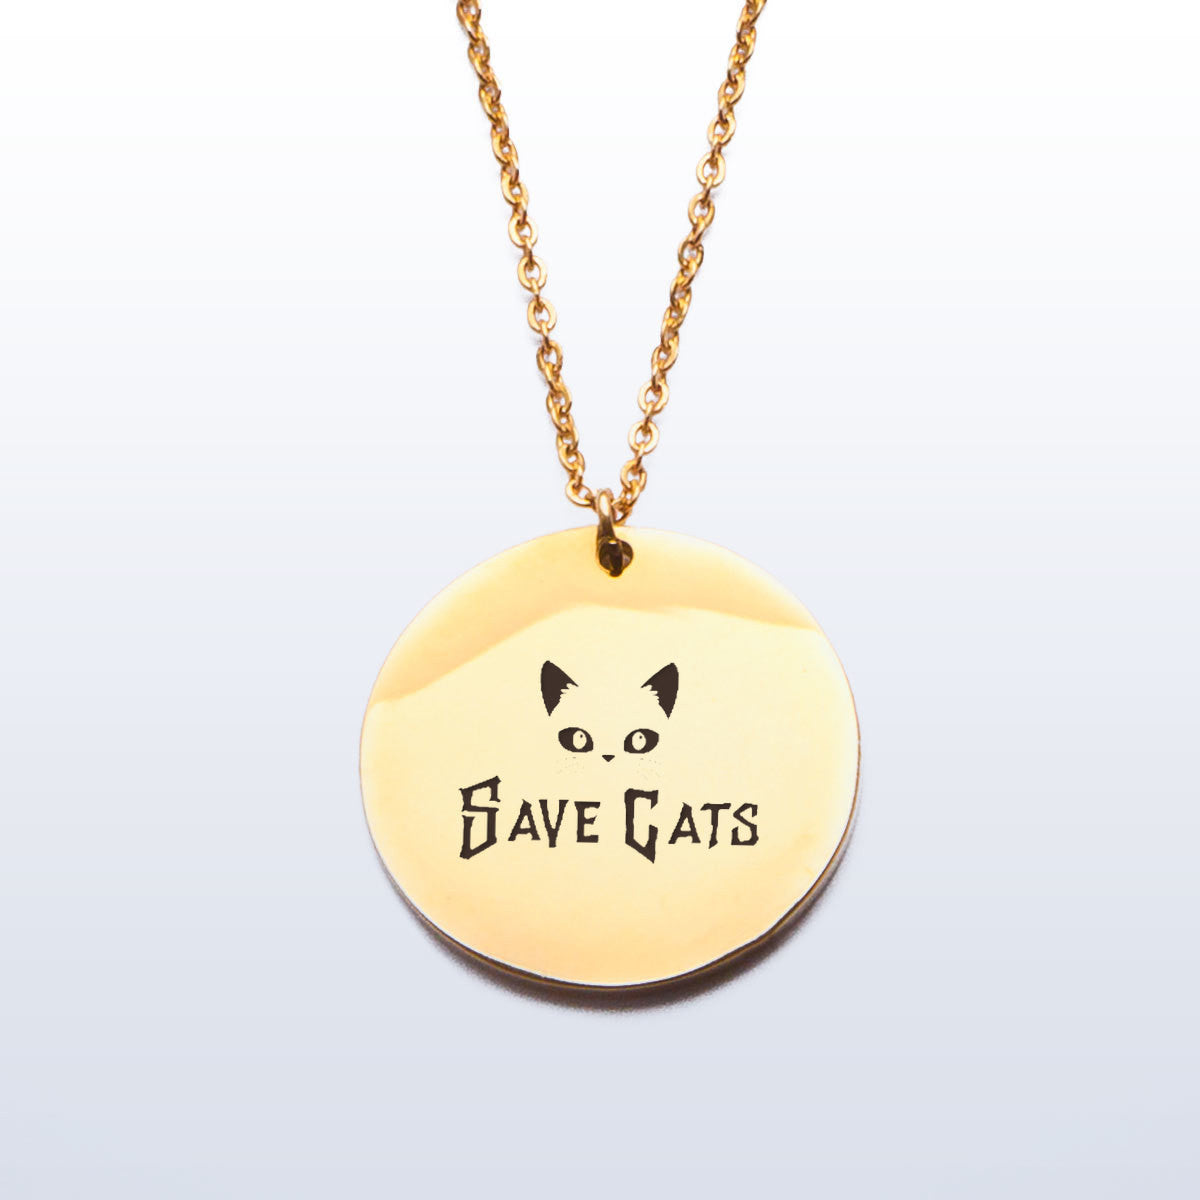 Save Cats Pendant up for grab!